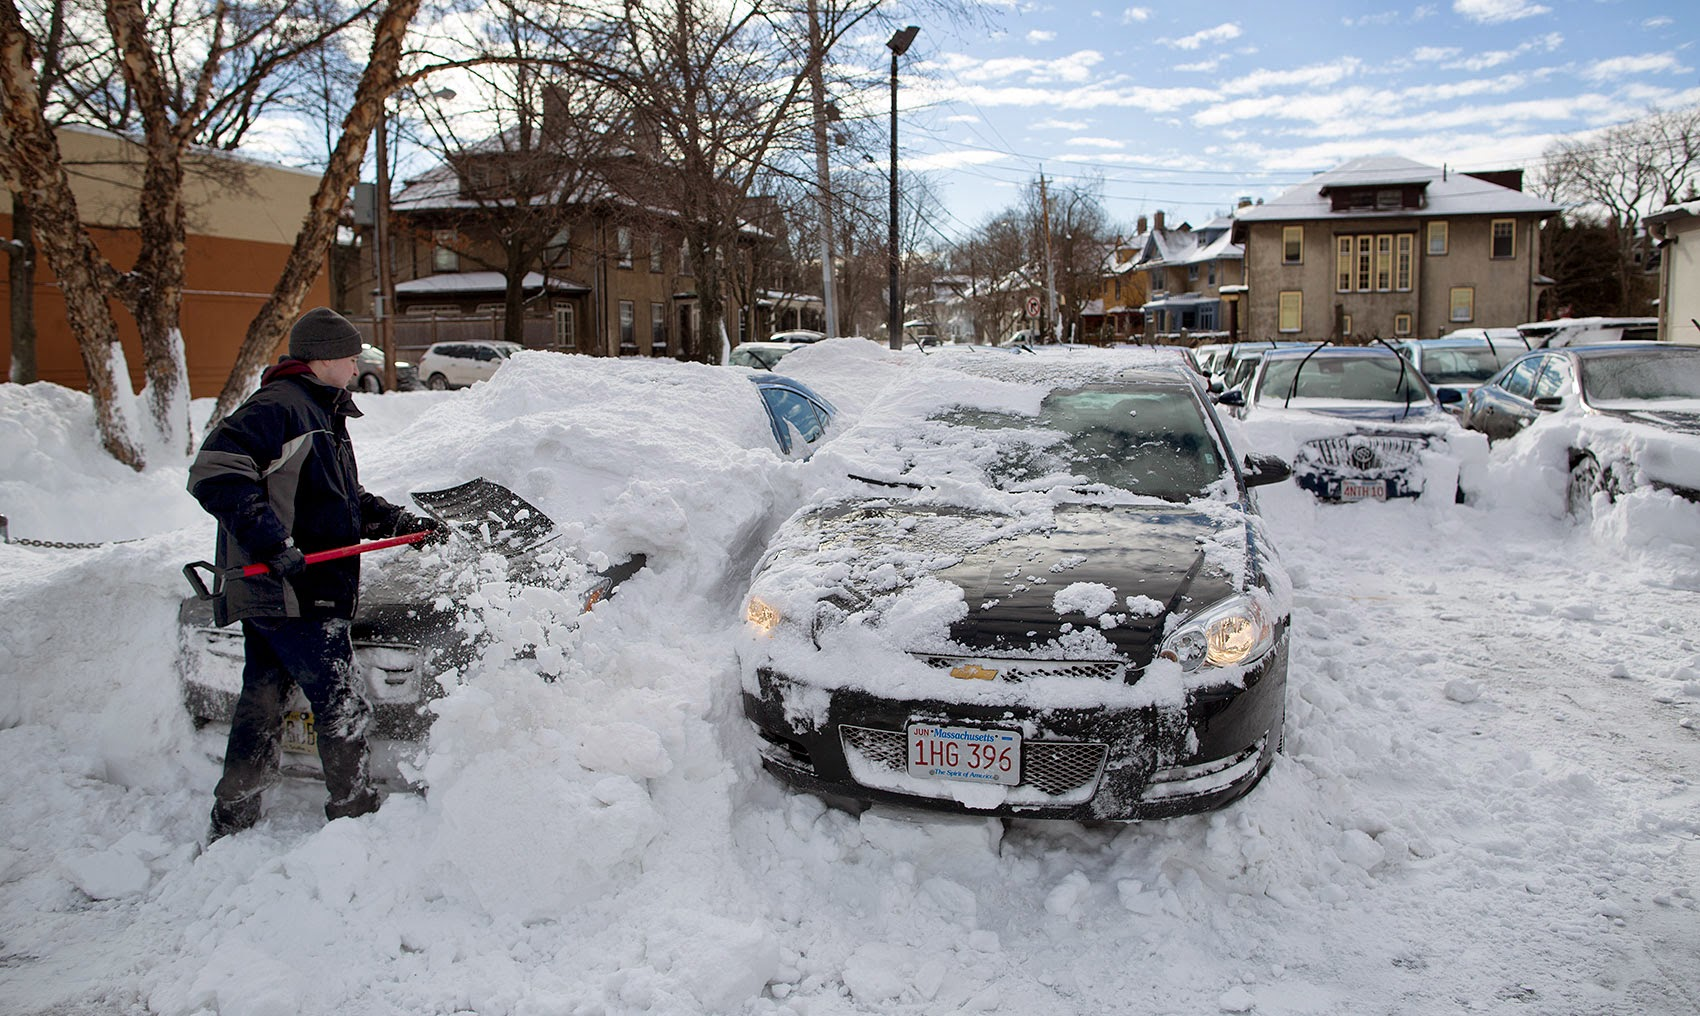 A Boston-area resident digs out their car after a big snowstorm in 2015. (Robin Lubbock/WBUR)